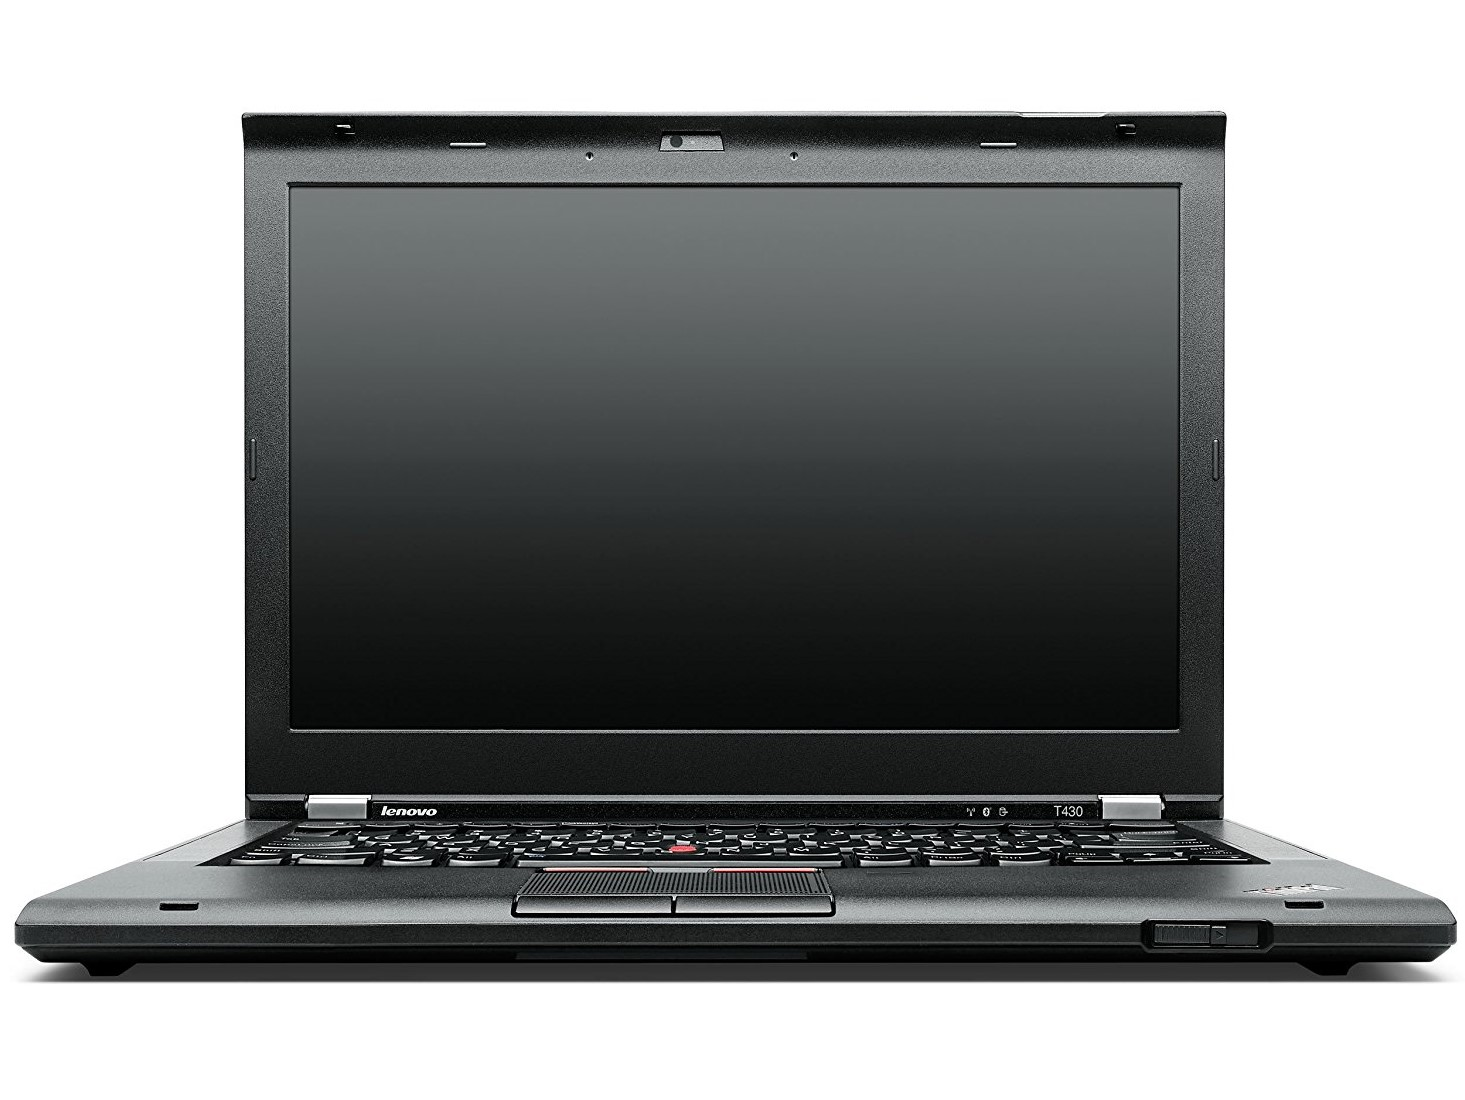 Thinkpad T430 / i5 2,6GHz / 8GB / 320GB HDD / WIN 7